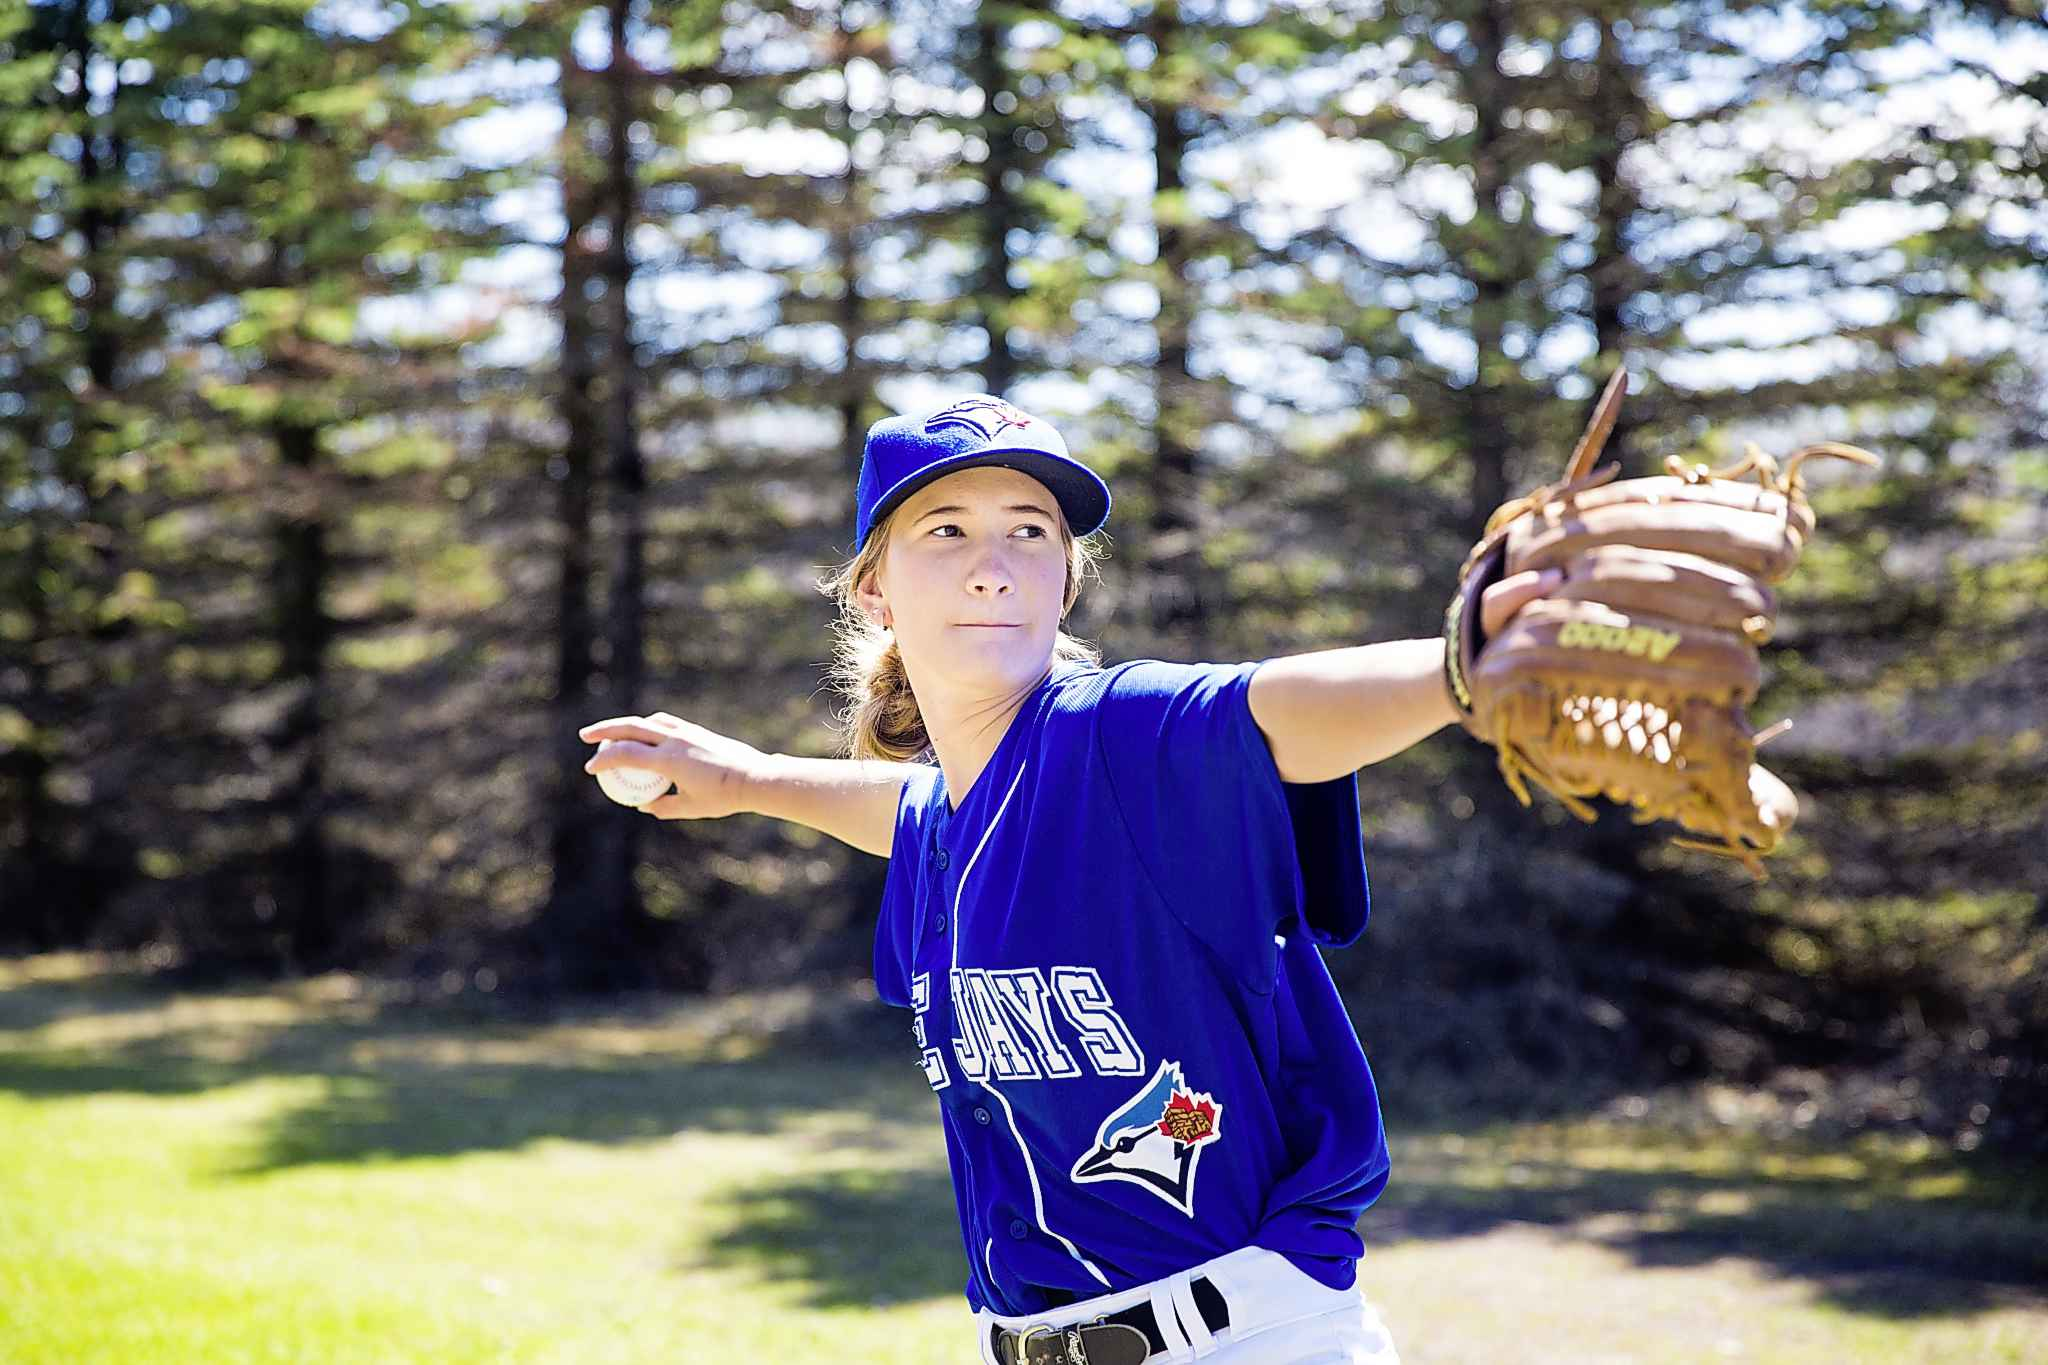 Brittney Langlais is expected to make history this weekend as the first woman to play in the Manitoba Junior Baseball League's 43-year history. MIKAELA MACKENZIE / WINNIPEG FREE PRESS